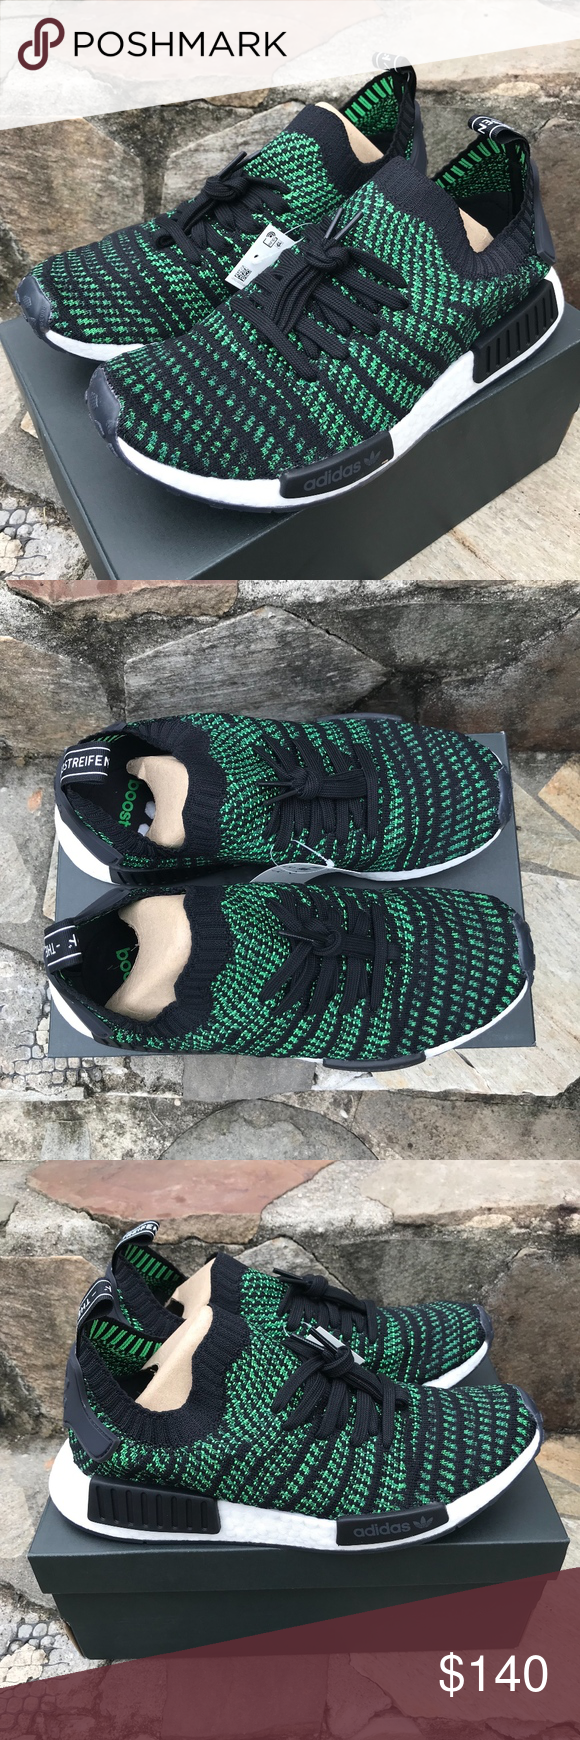 f31ddd18a Adidas Green NMD R1 STLT PK Sz 9 Black and green Size Men s 9 Slip on comfy  sneakers Running shoes NIB OFFERS AND BUNDLES WELCOMED! adidas Shoes  Sneakers